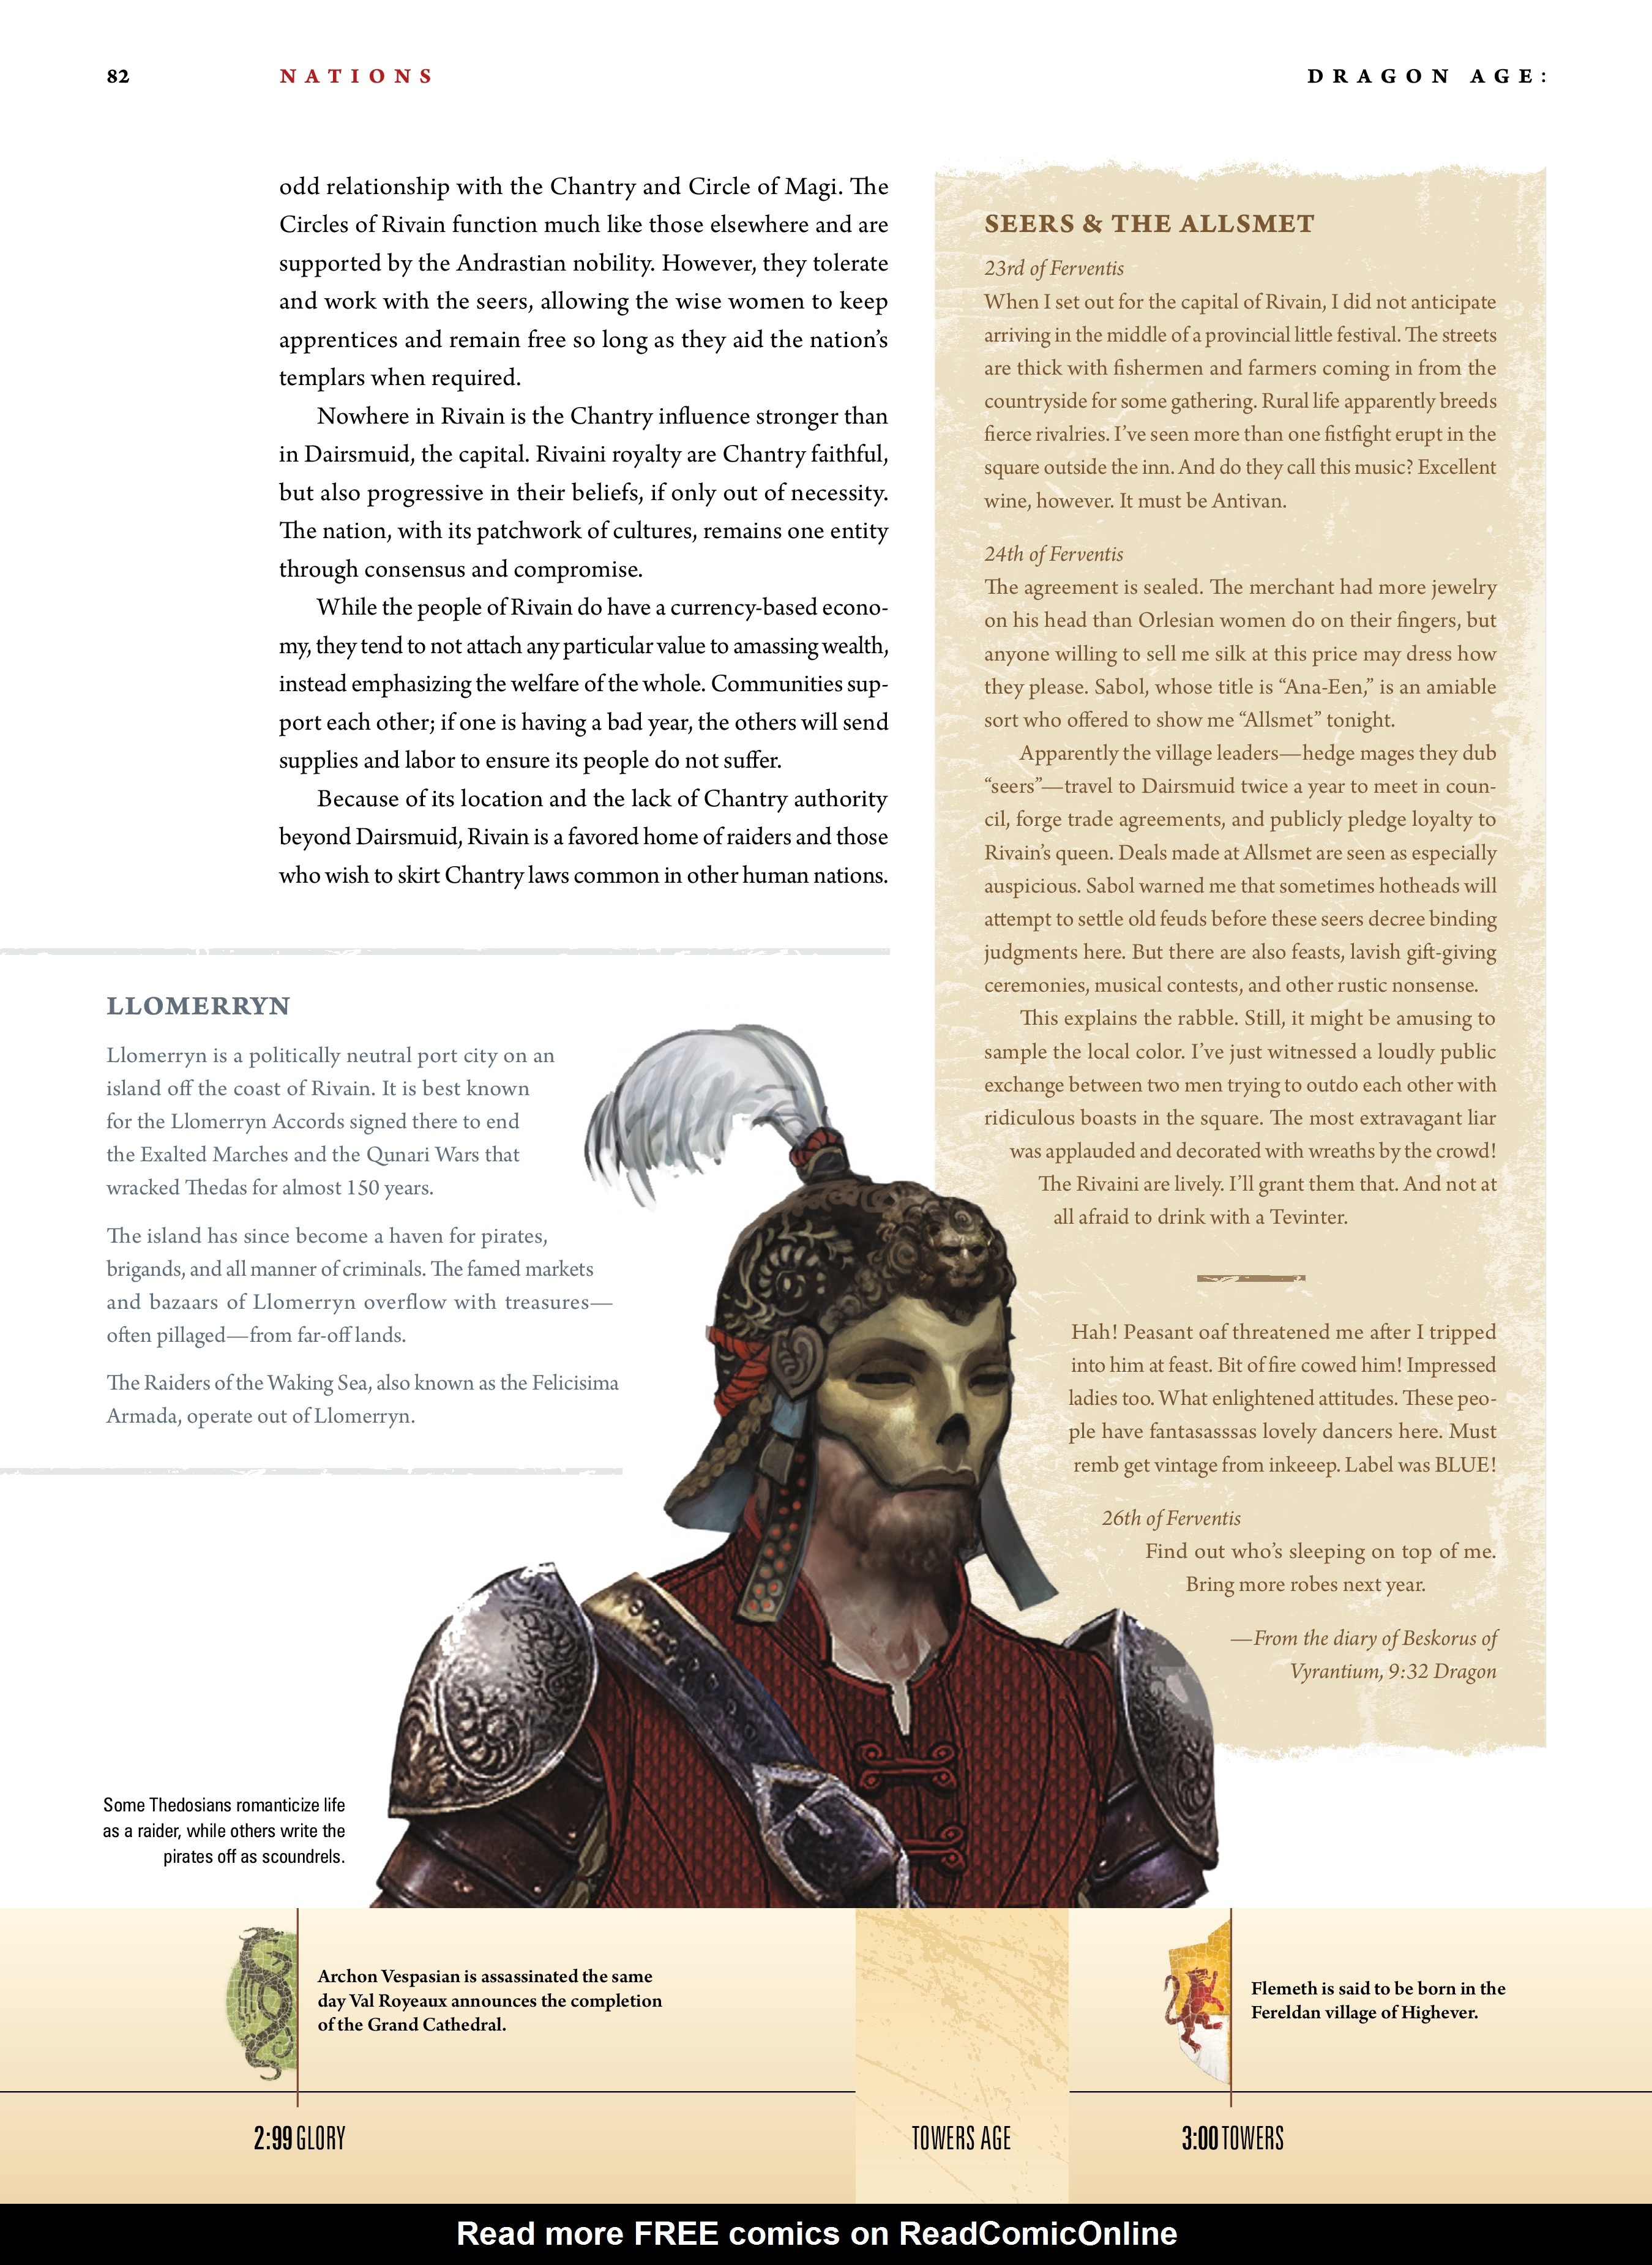 Read online Dragon Age: The World of Thedas comic -  Issue # TPB 1 - 66